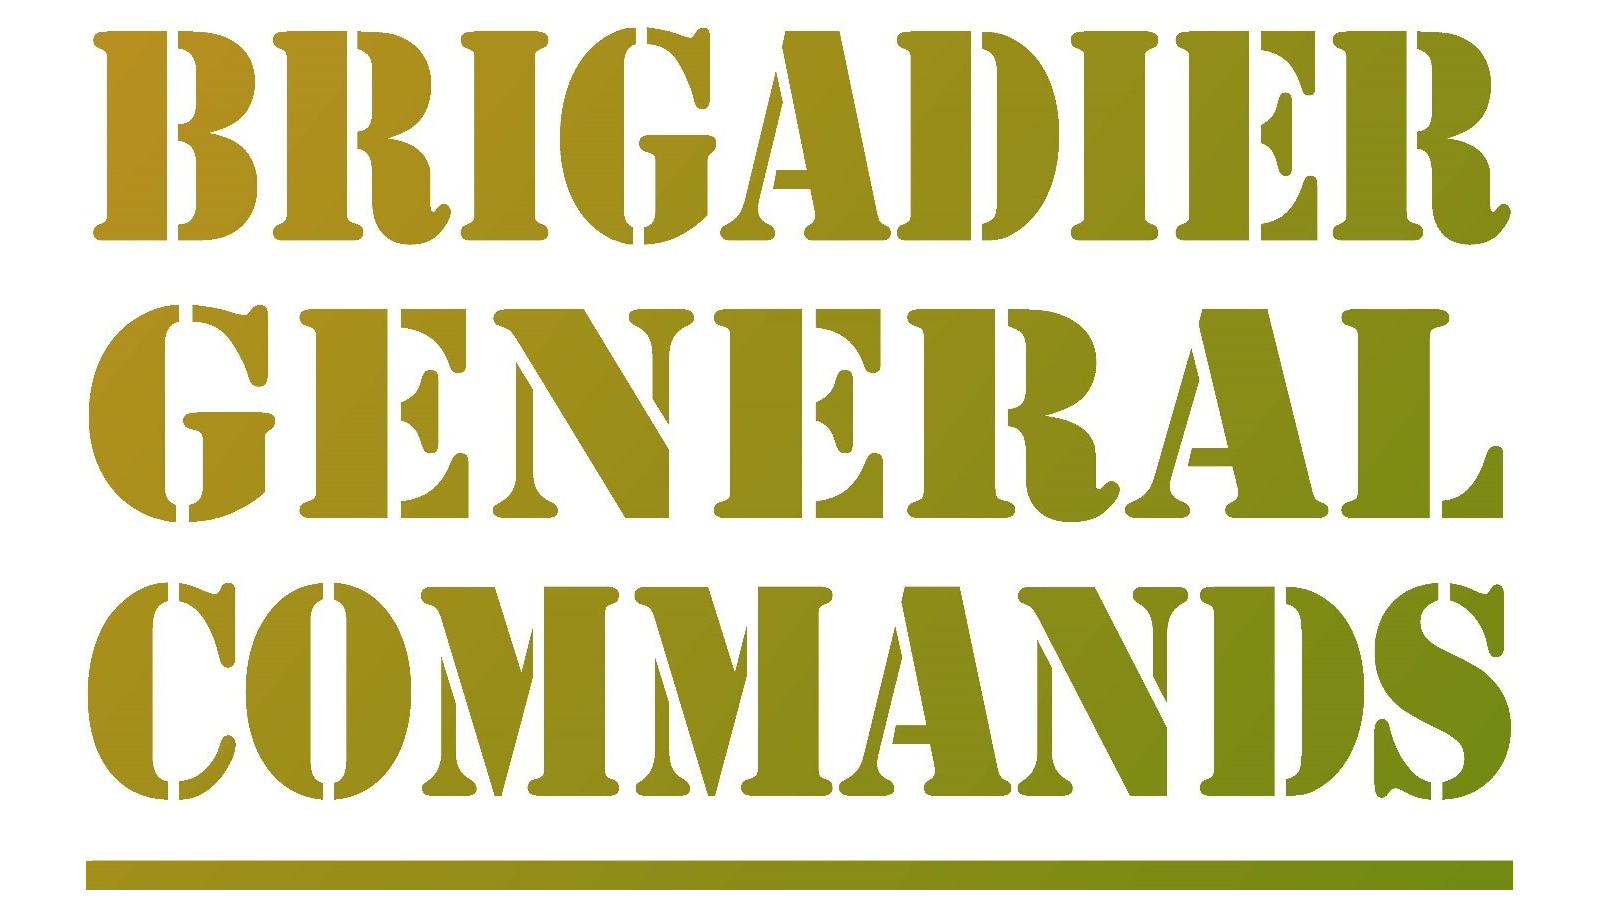 Brigadier General Commands